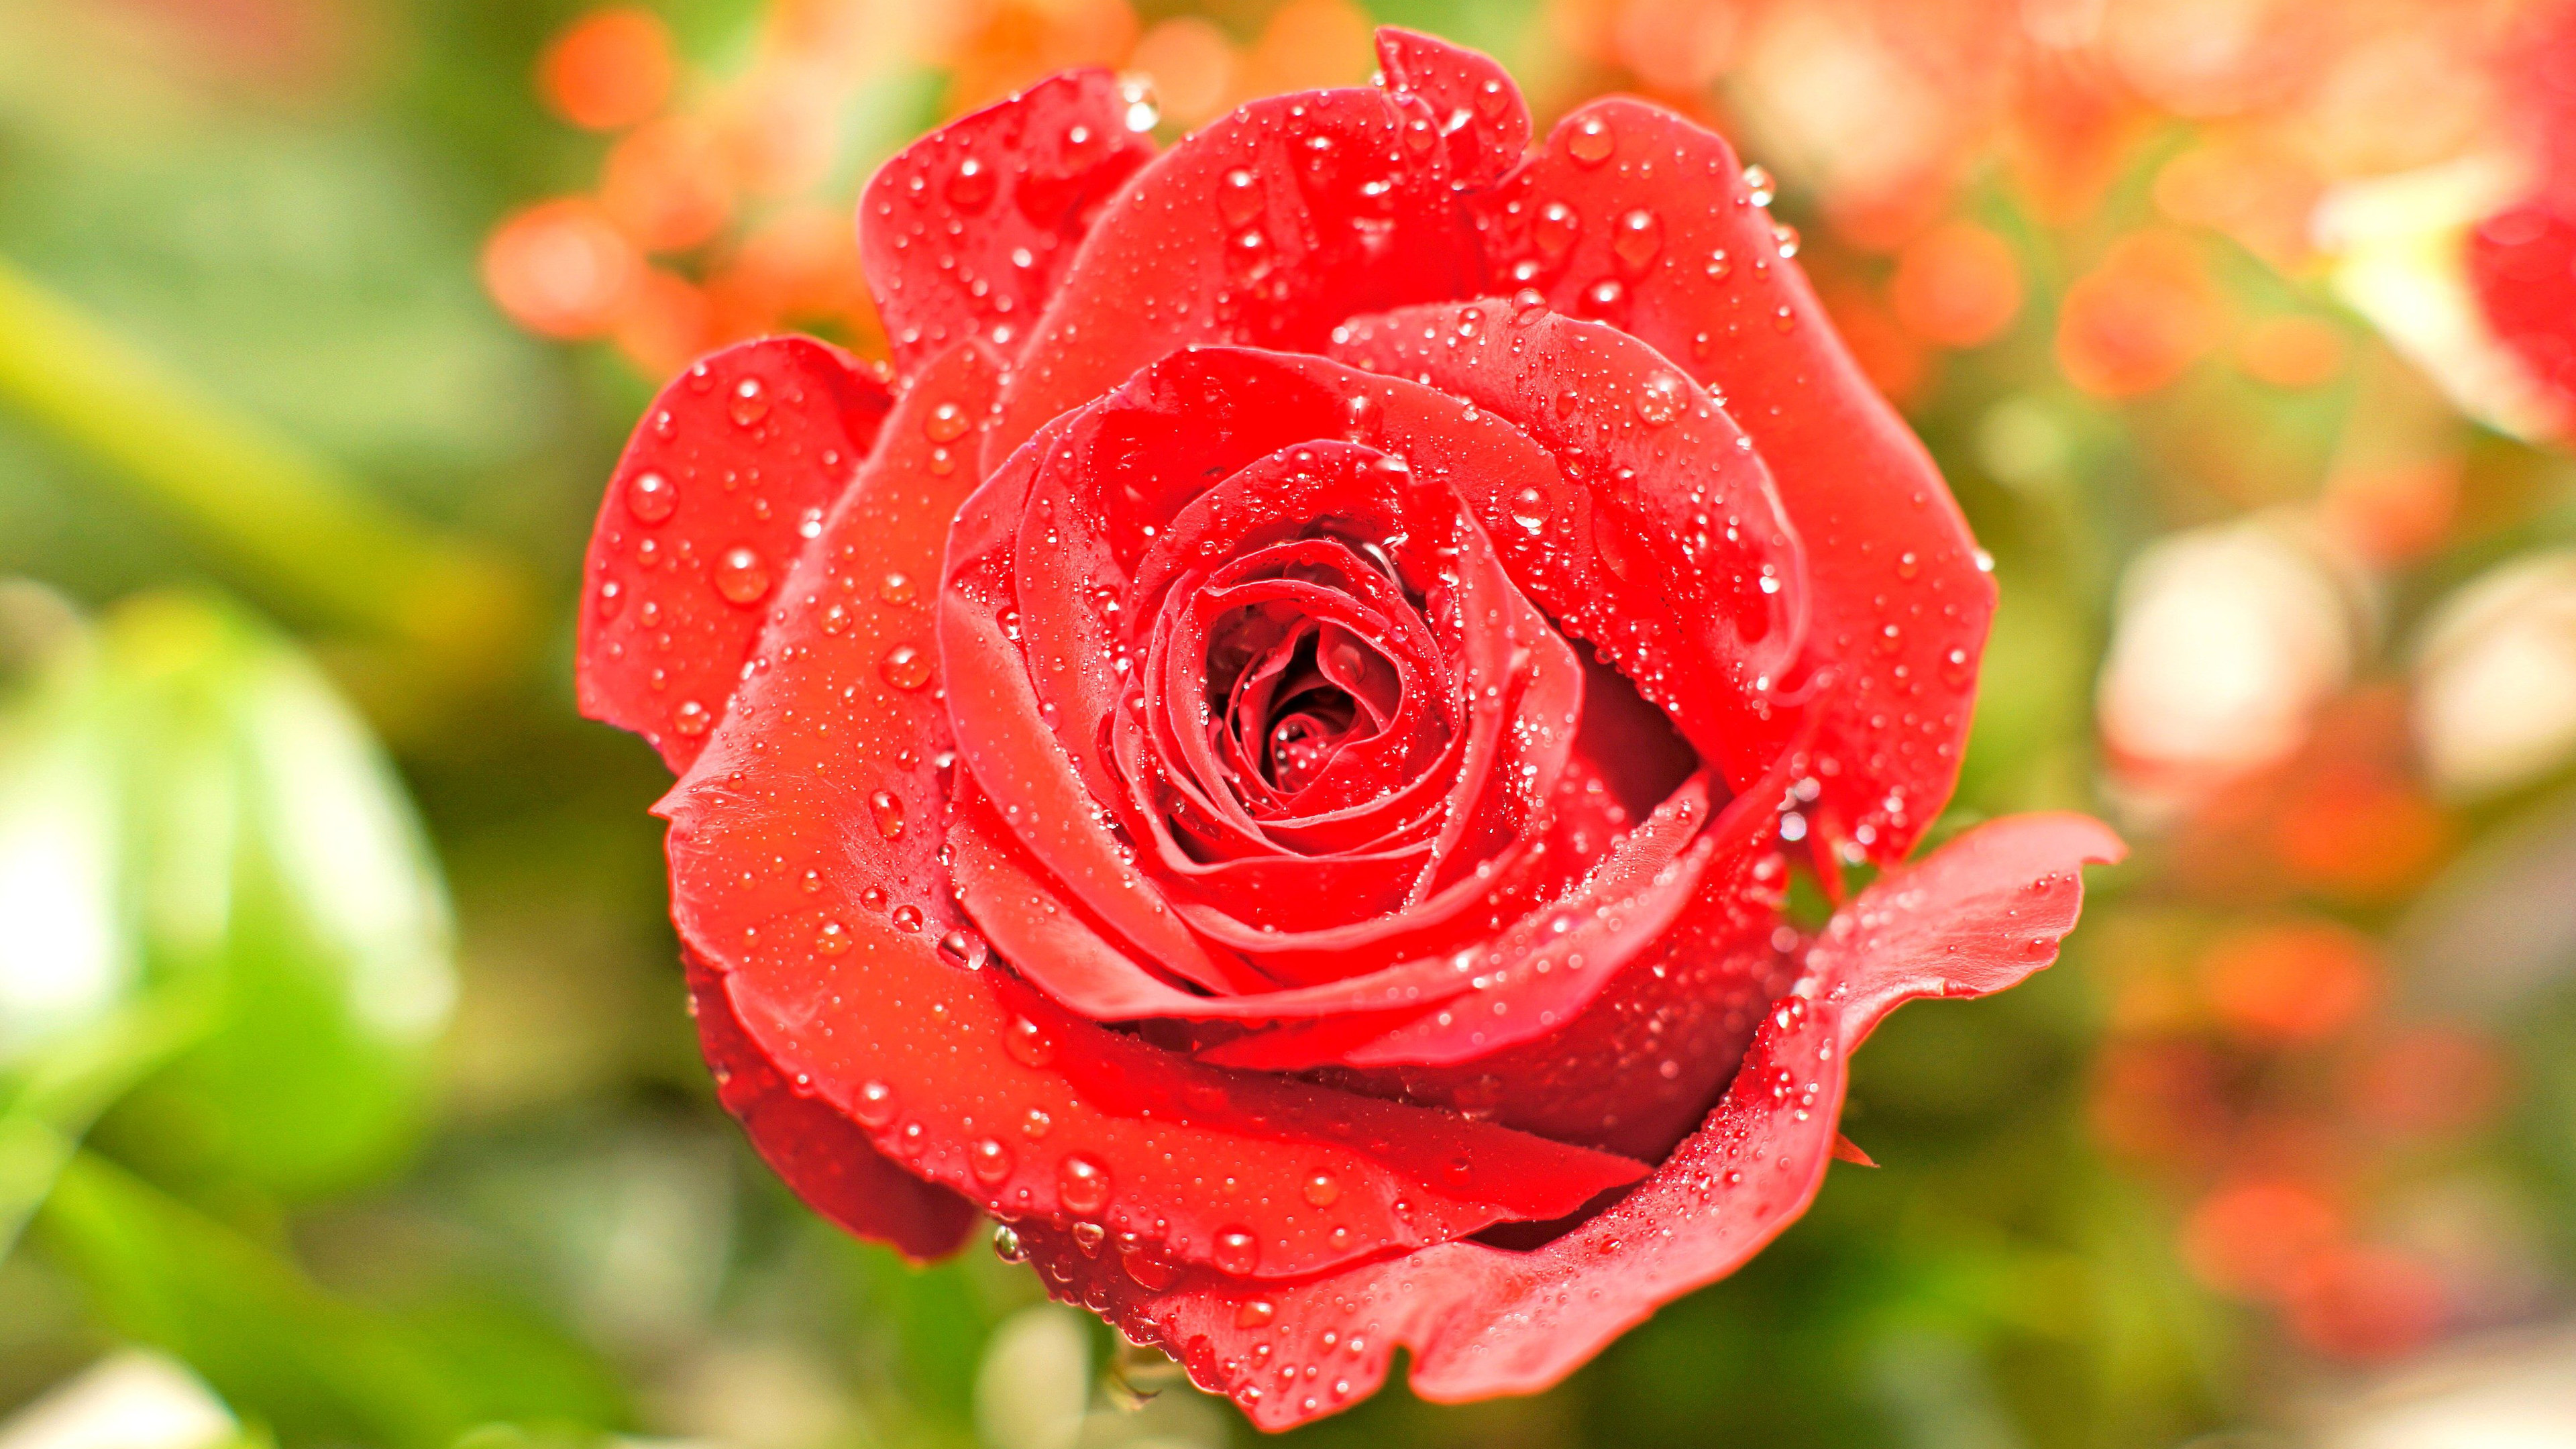 High Resolution Close Up Photo Of Wet Red Rose For